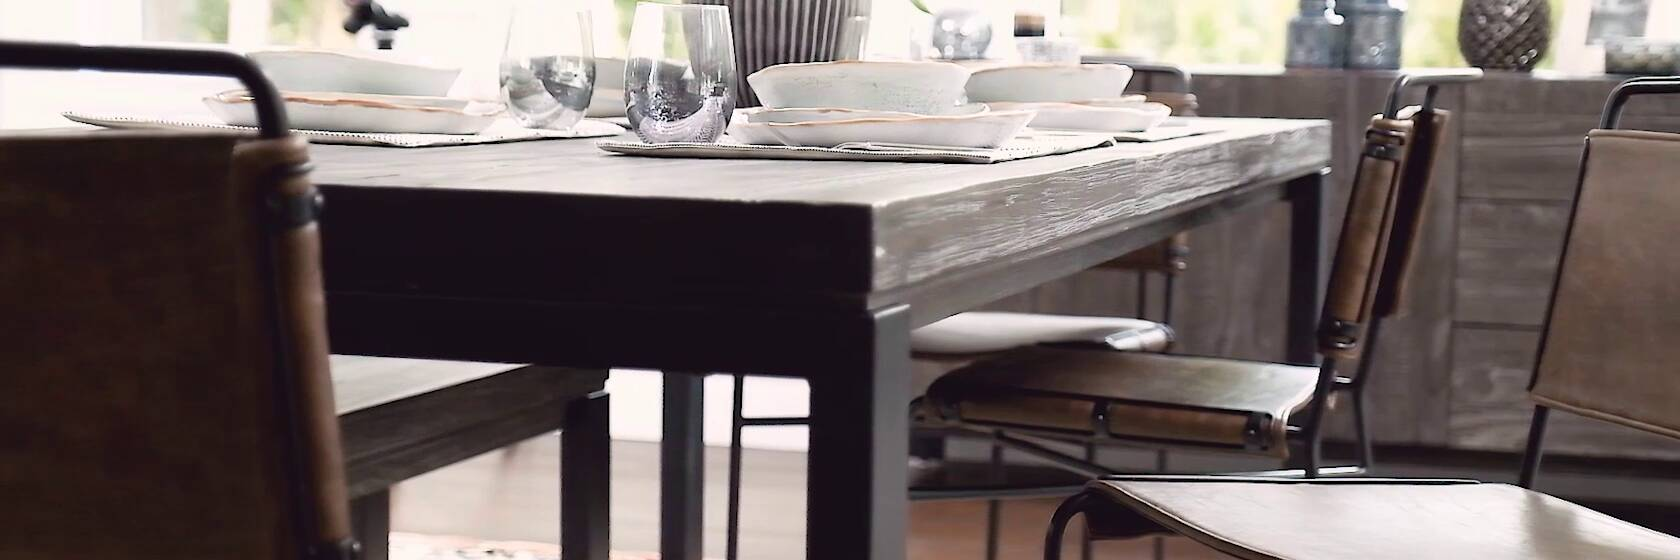 Furniture Stores Brampton Ontario Clp Summer Dining 2 1680x560